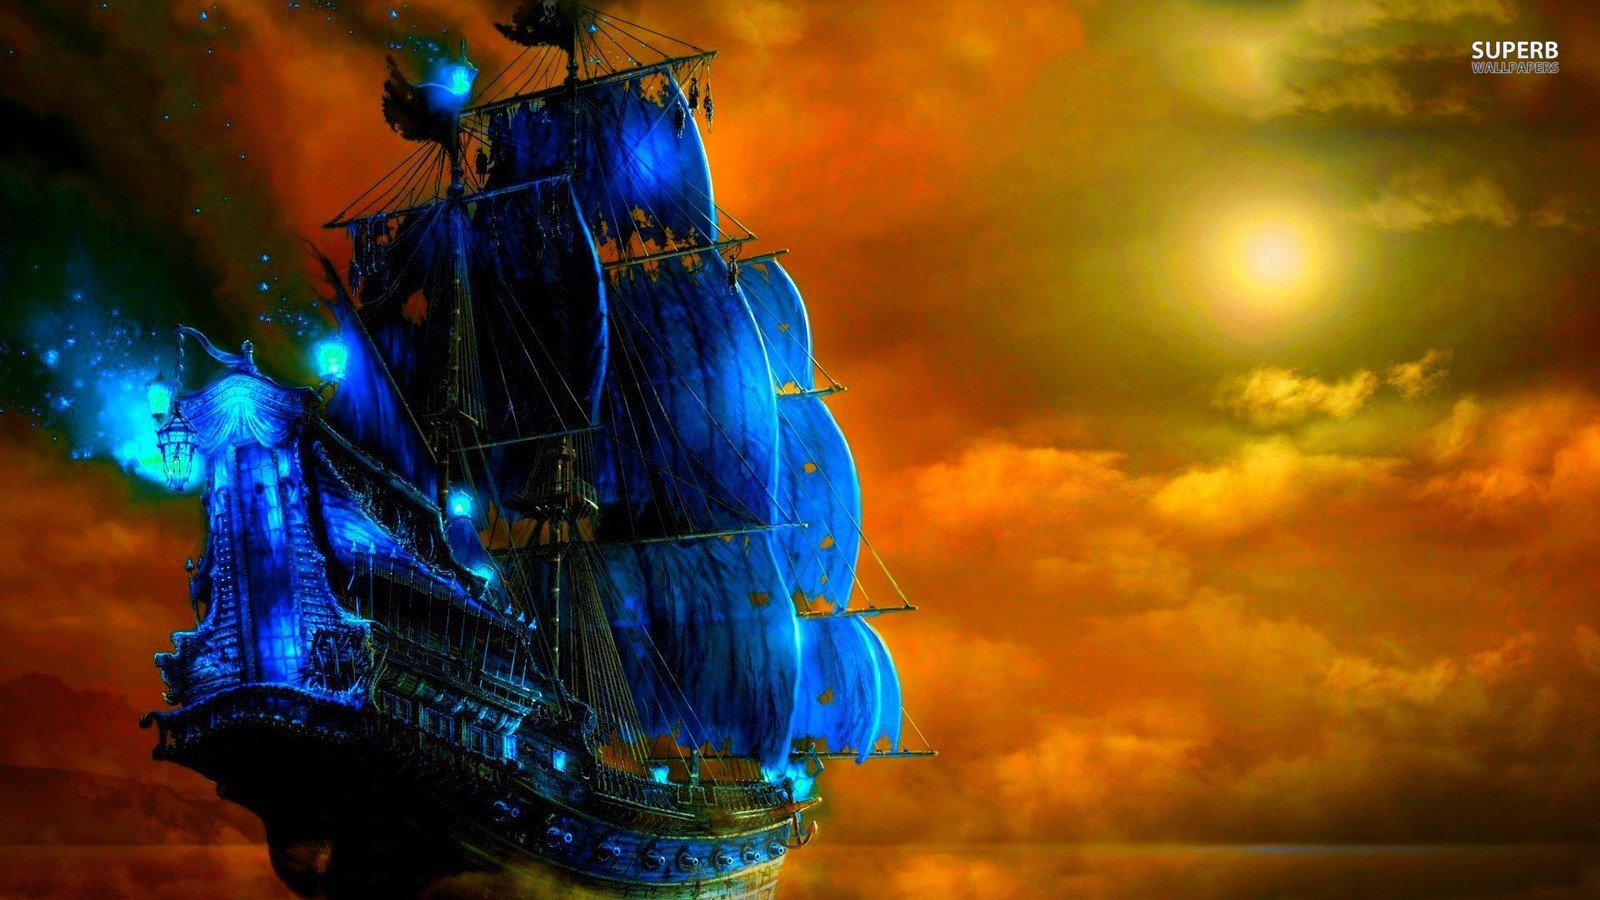 pirates images ghost ship hd wallpaper and background